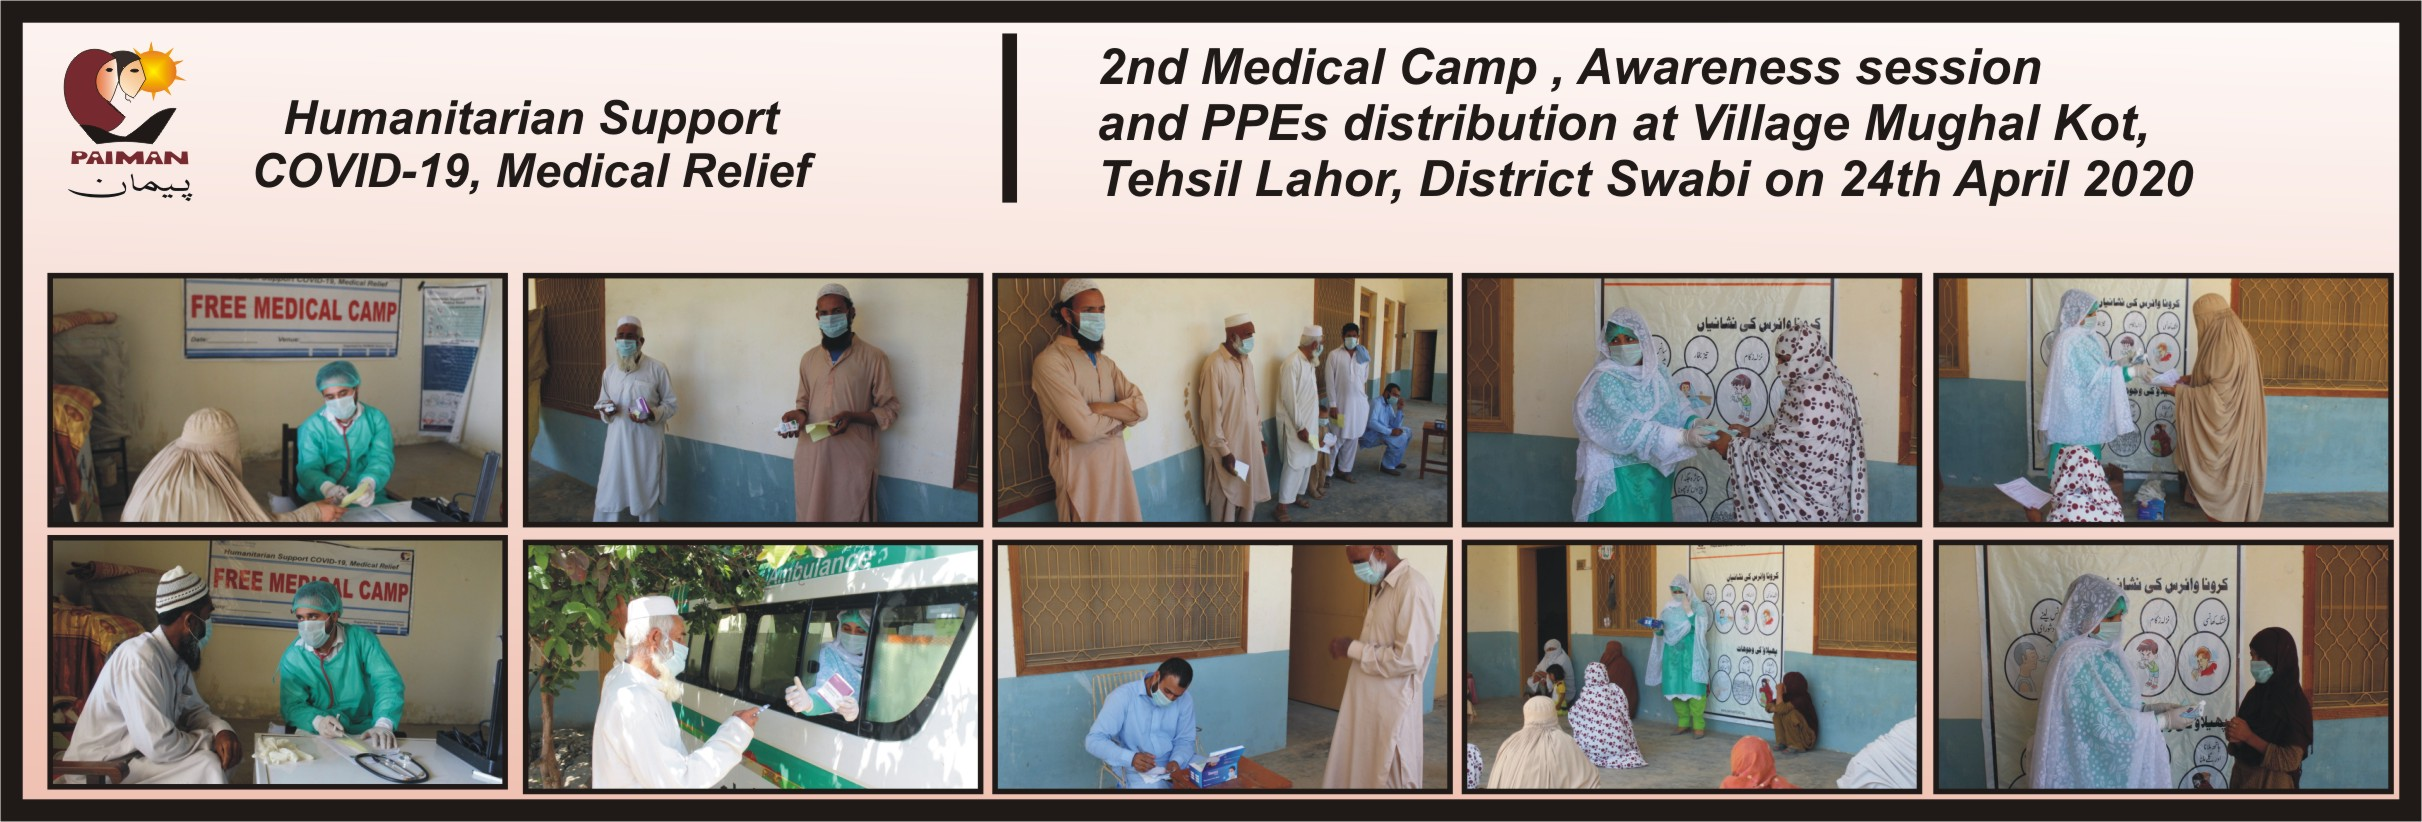 2nd-Medical-Camp